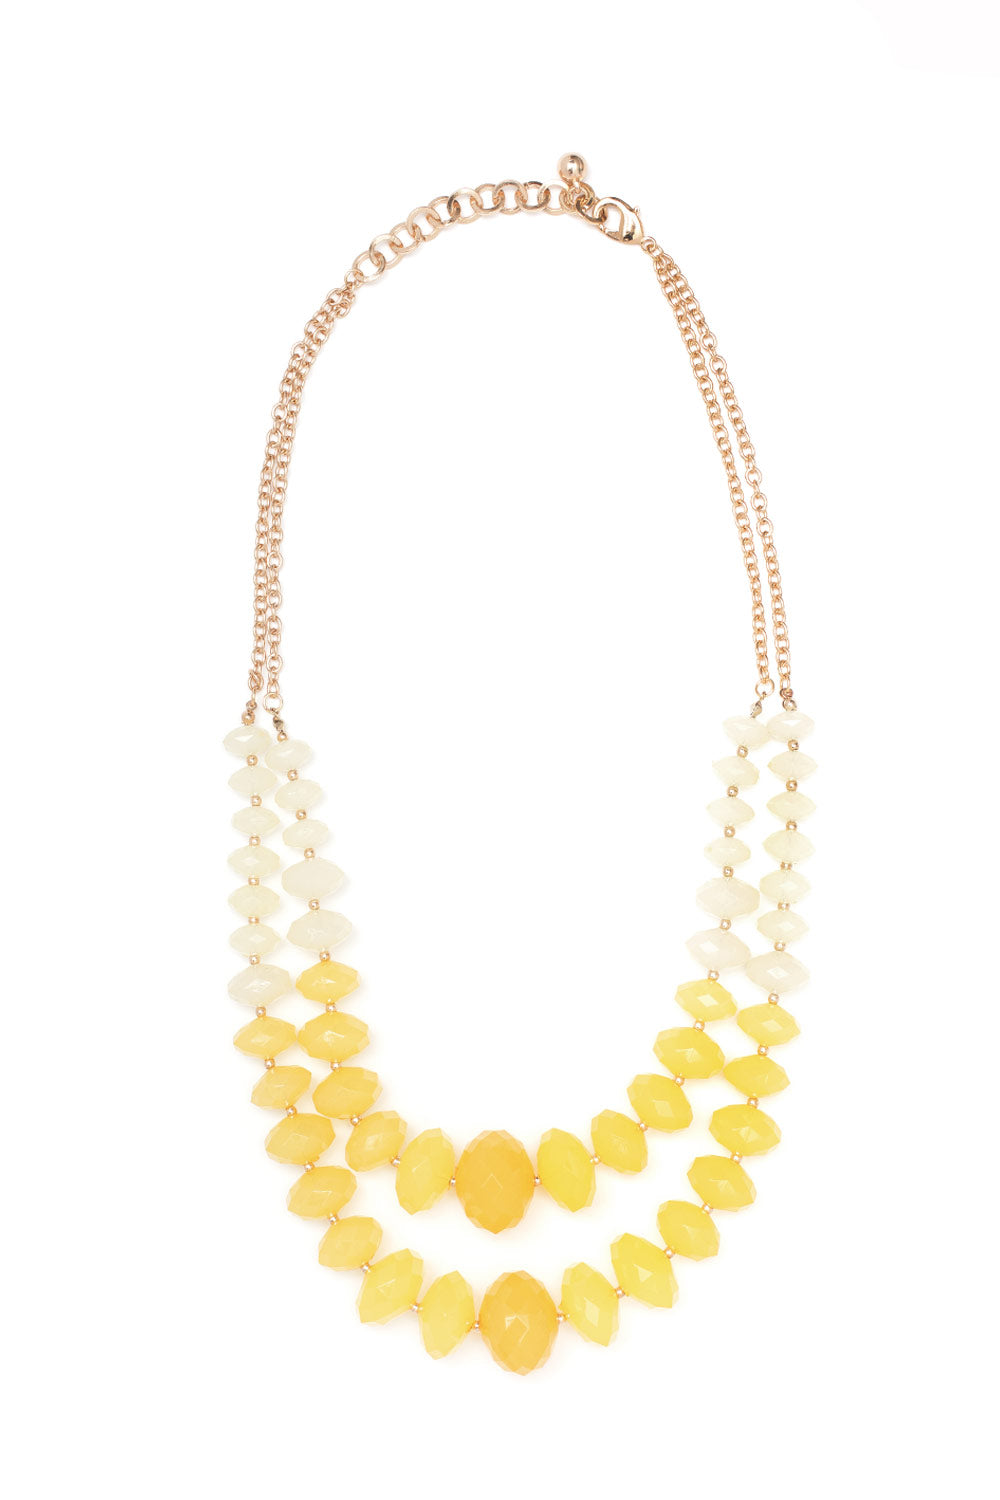 Type 1 Lemonade Necklace